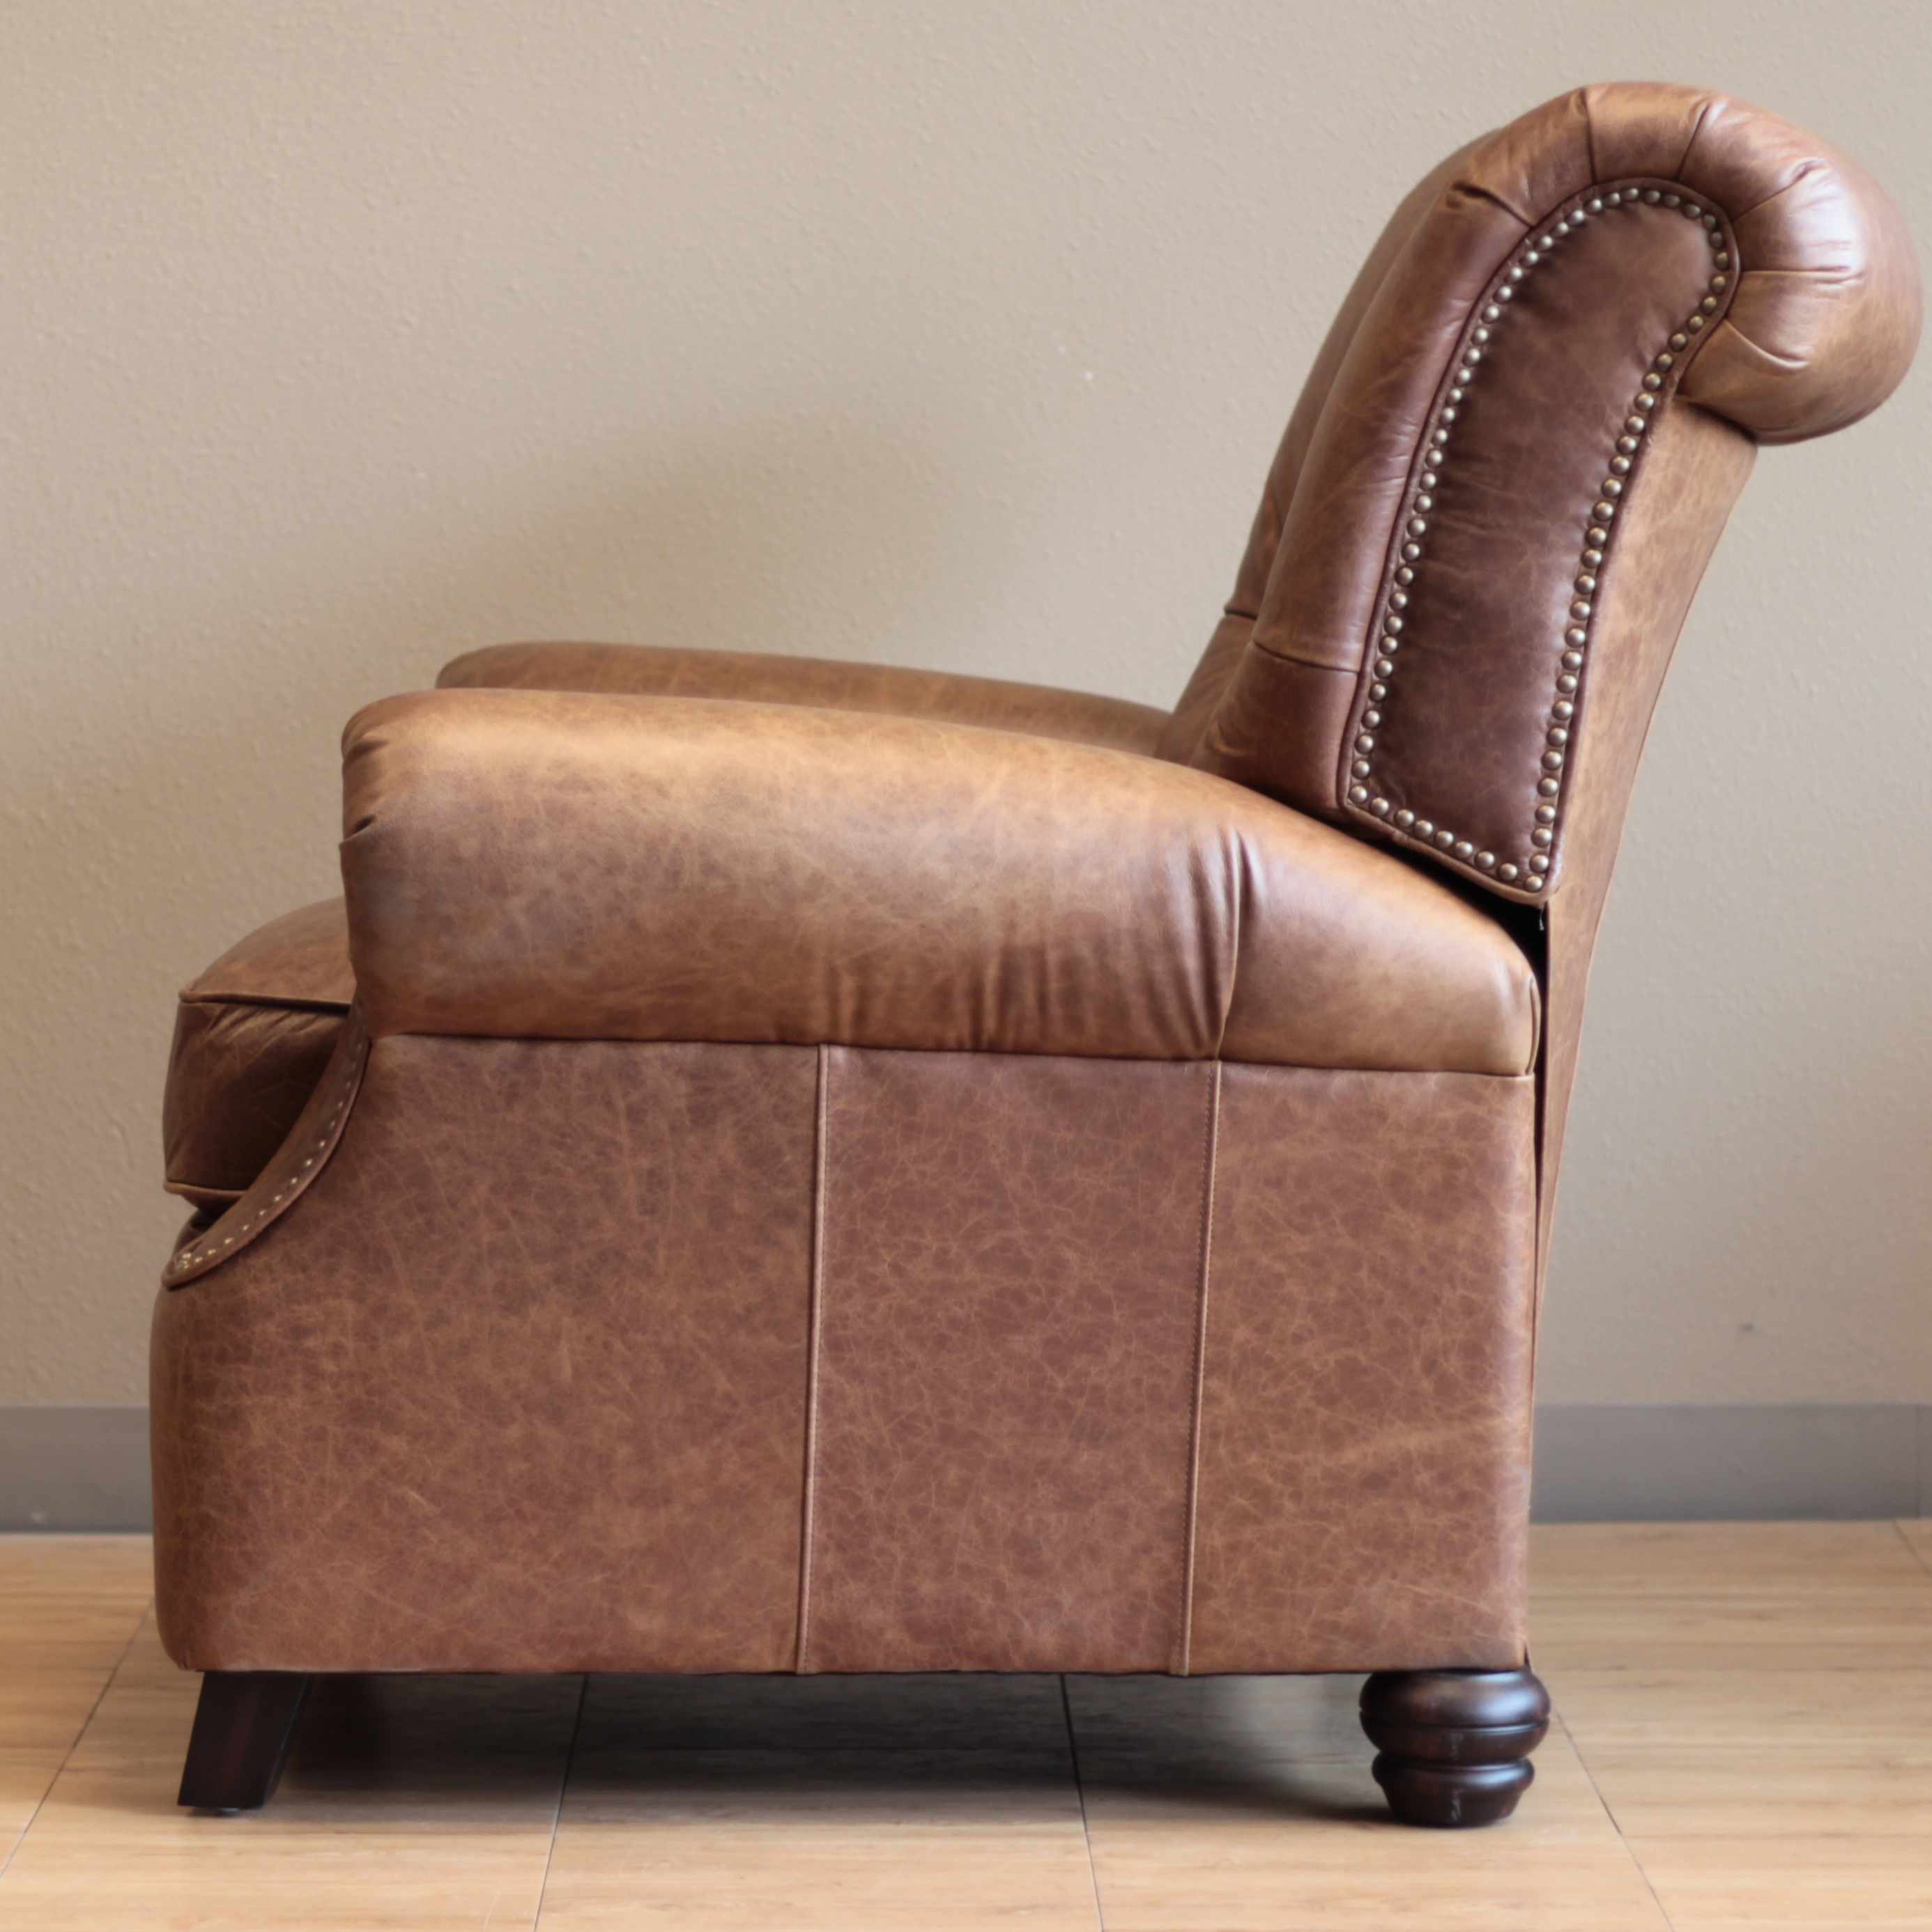 Barcalounger Phoenix II Recliner Chair - Leather Recliner Chair ...